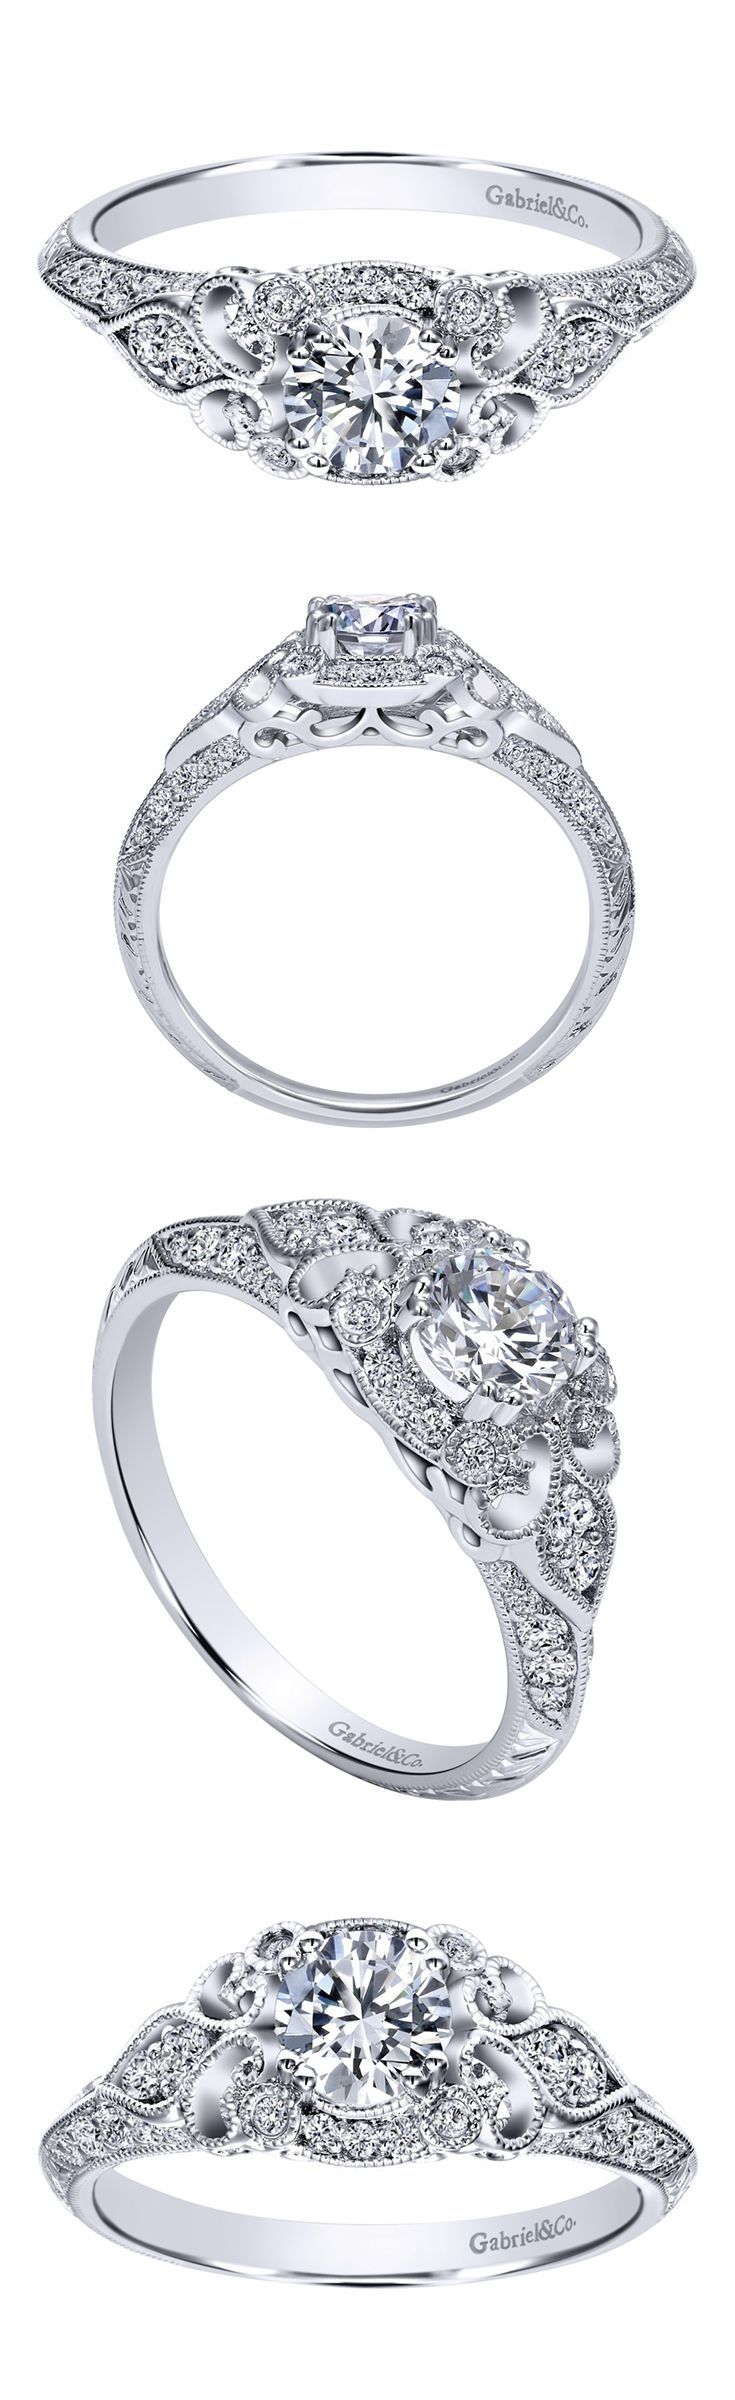 Looking for the perfect engagement ring to match with your vintage wedding? Check out this beautiful 14k White Gold Victorian Halo Engagement Ring by Gabriel